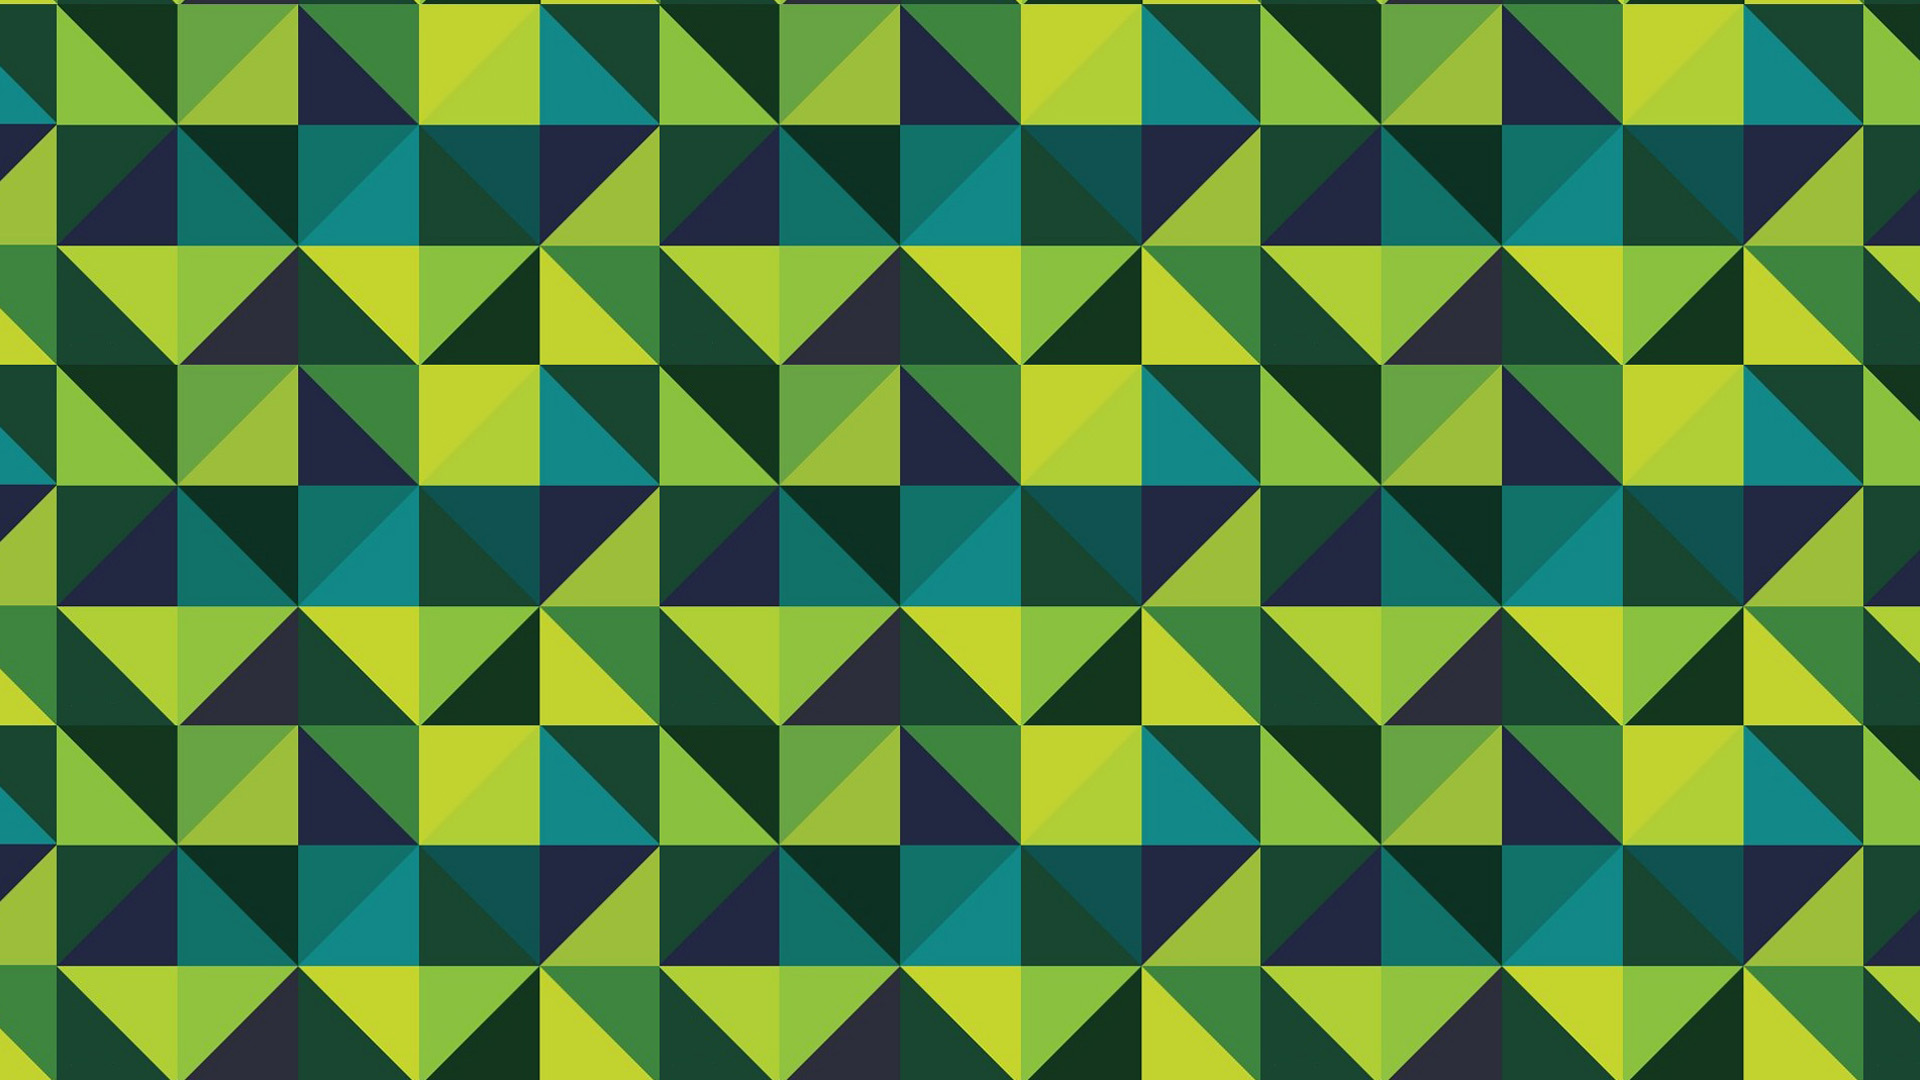 Download Wallpaper Squares Gallery HD Wallpapers Download Free Images Wallpaper [1000image.com]